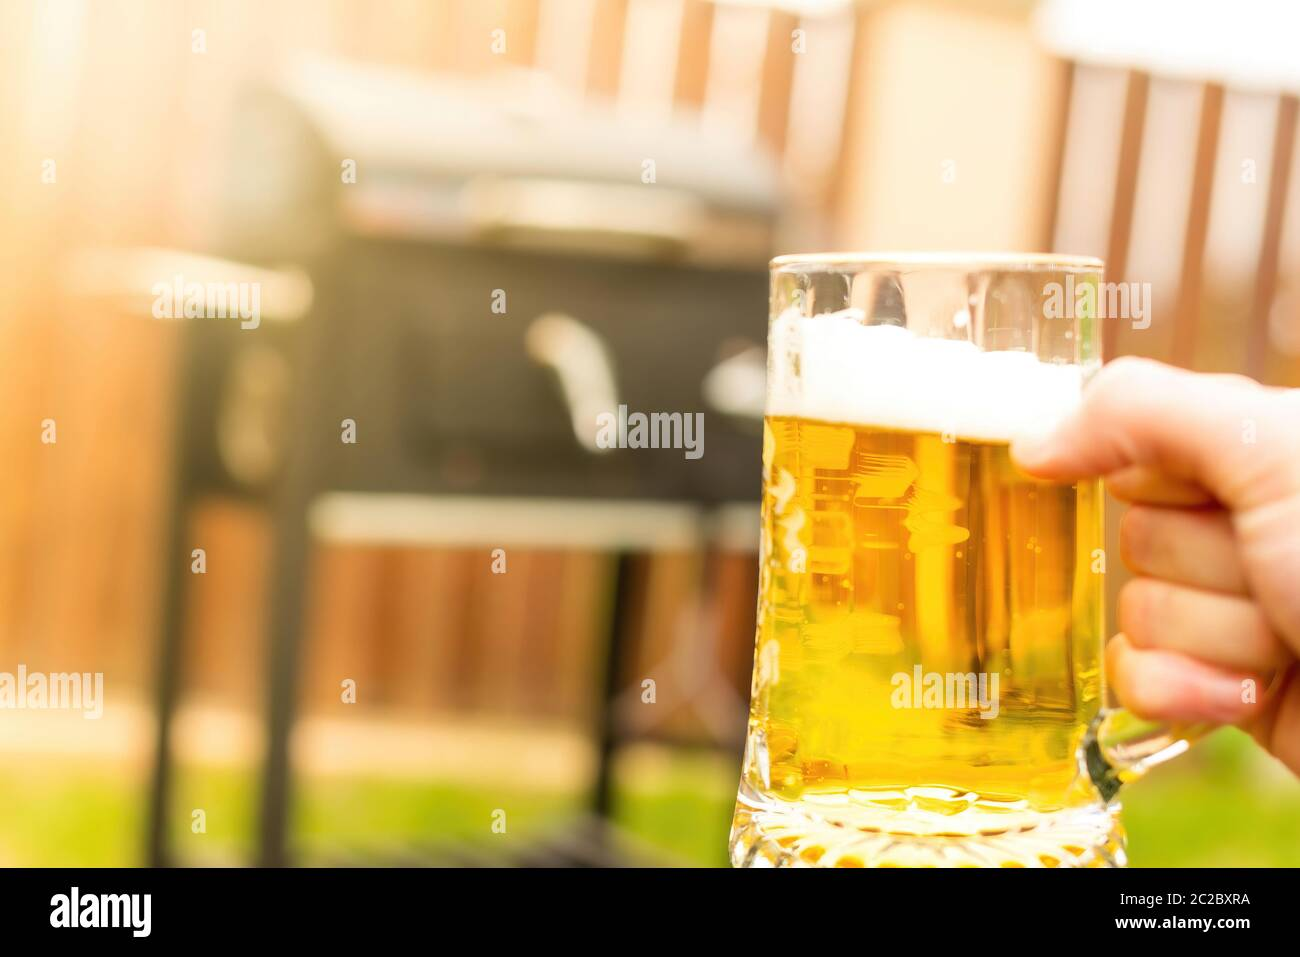 Unrecognizable person carrying mug of cold beer on blurred background of grill and fence during barbecue in yard Stock Photo